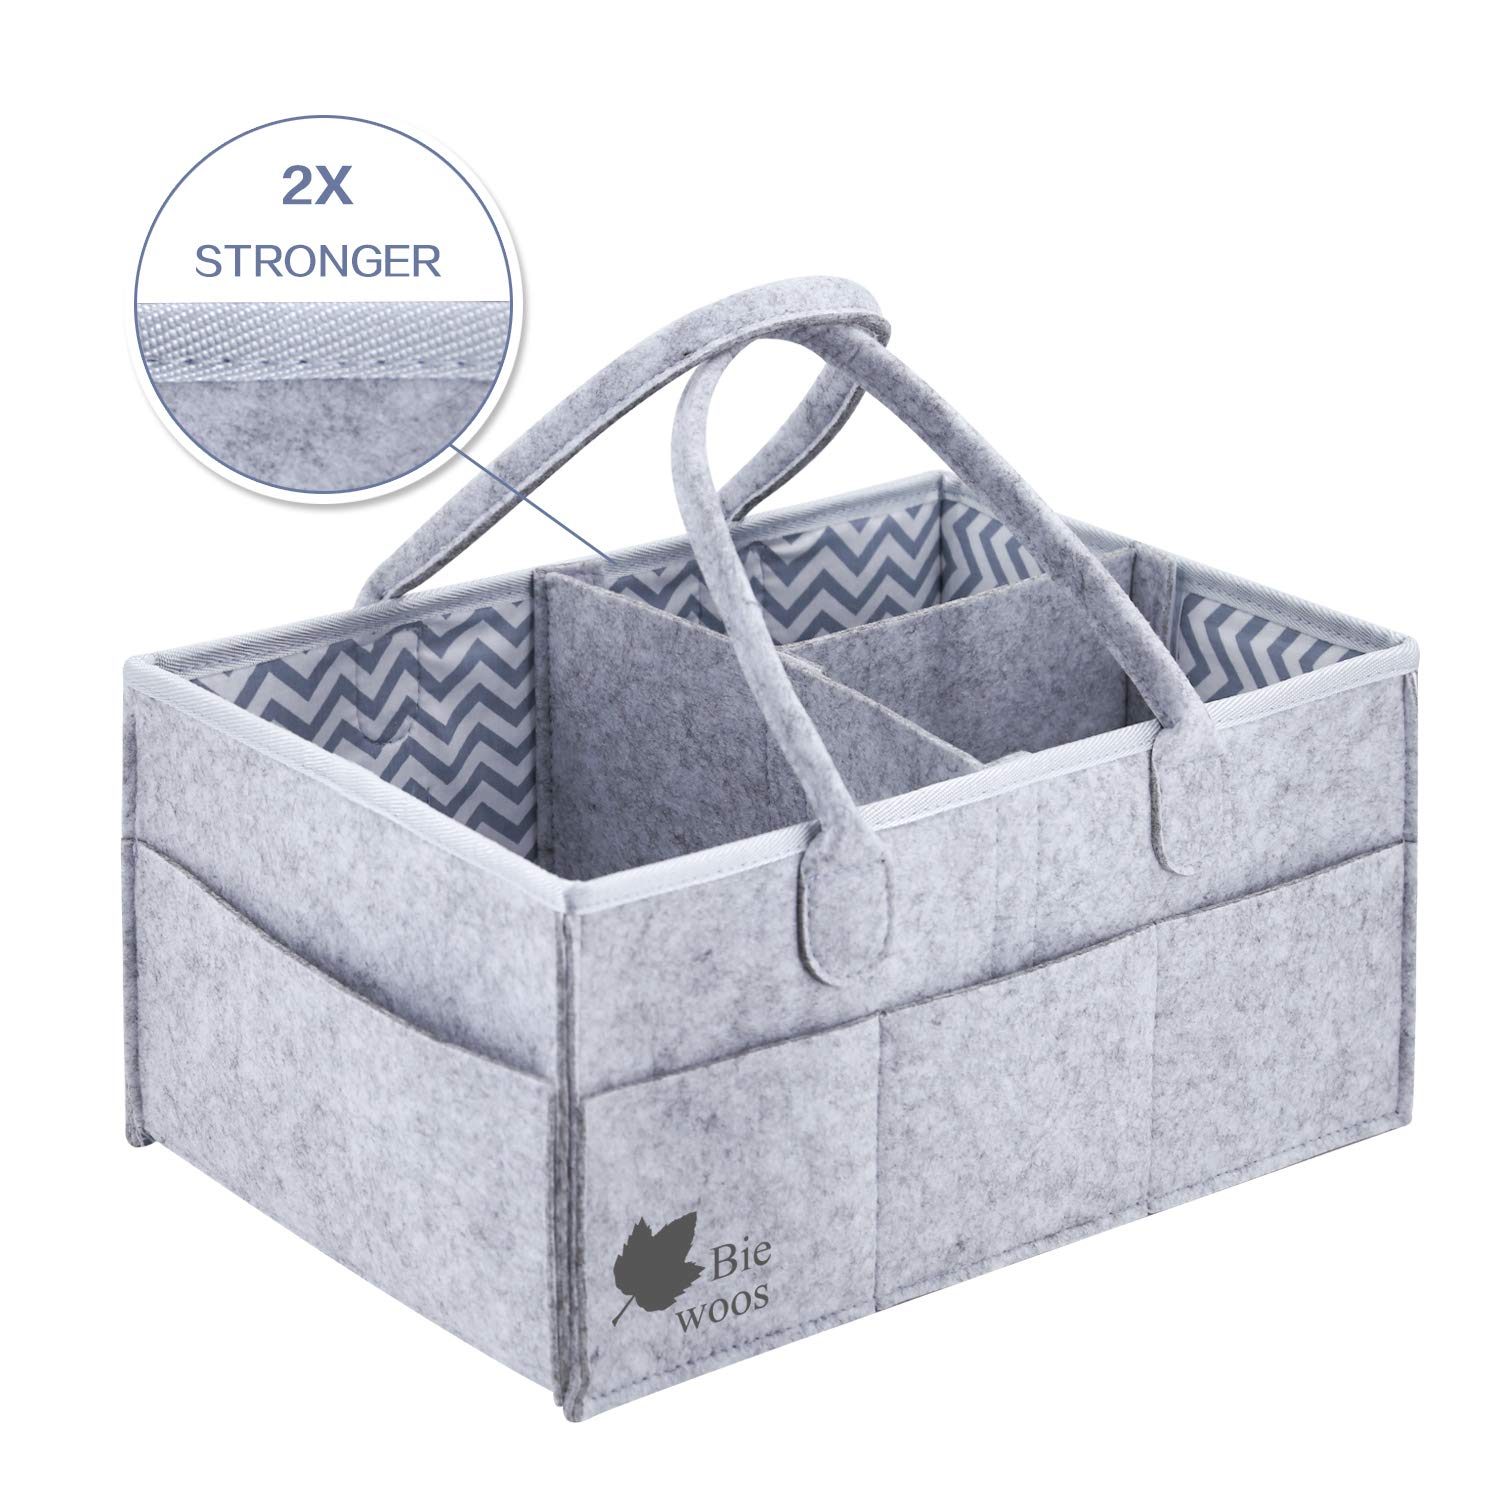 Baby Diaper Caddy Organizer| Car Travel Bag| Multifunctional Storage Basket for House - Nursery Diaper Caddy Storage Bin - Diaper Tote Bag | Newborn Registry Must Haves Potou